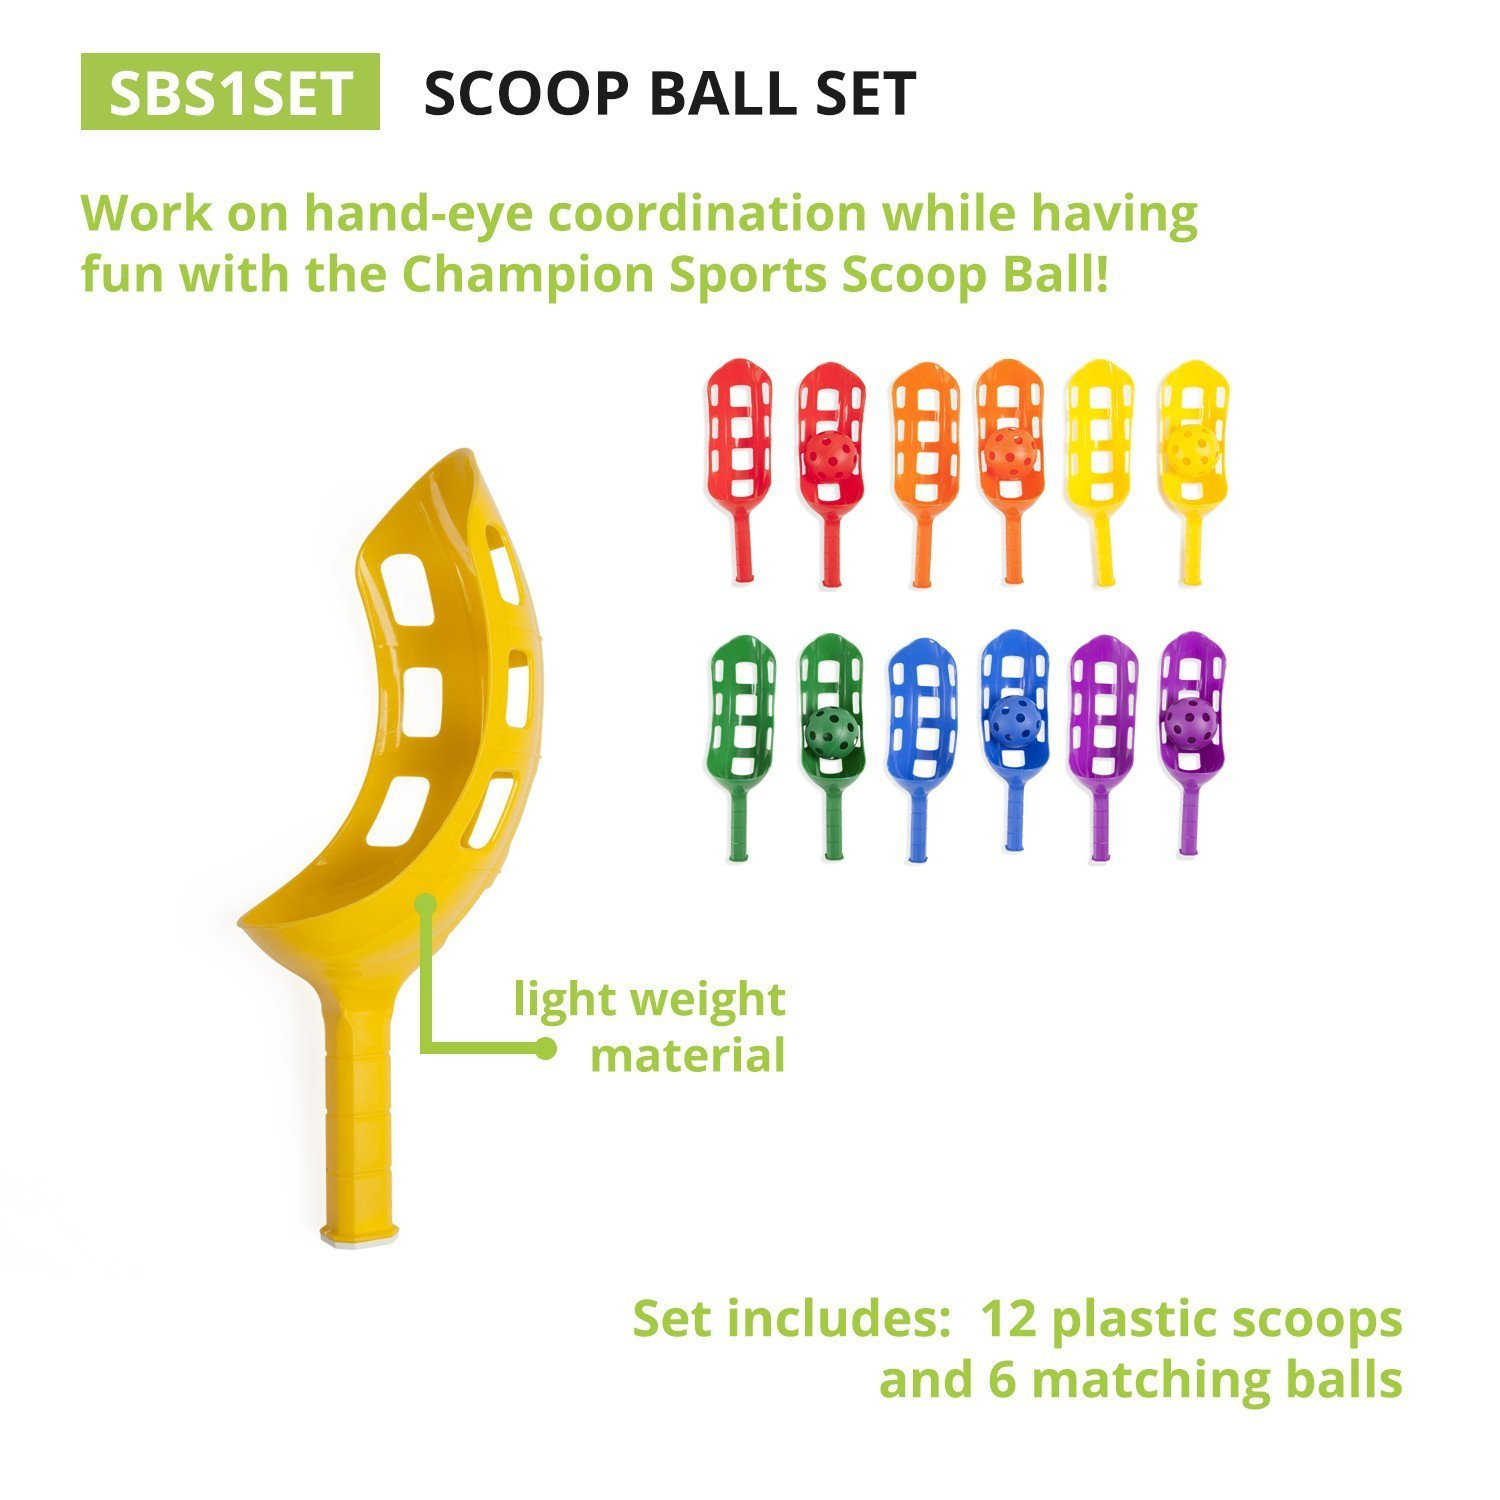 Champion Sports. Scoop Ball Set: Classic Outdoor Lawn Party & Kids Game in 6 Assorted Colors (Limited Edition) by Champion Sports. (Image #6)